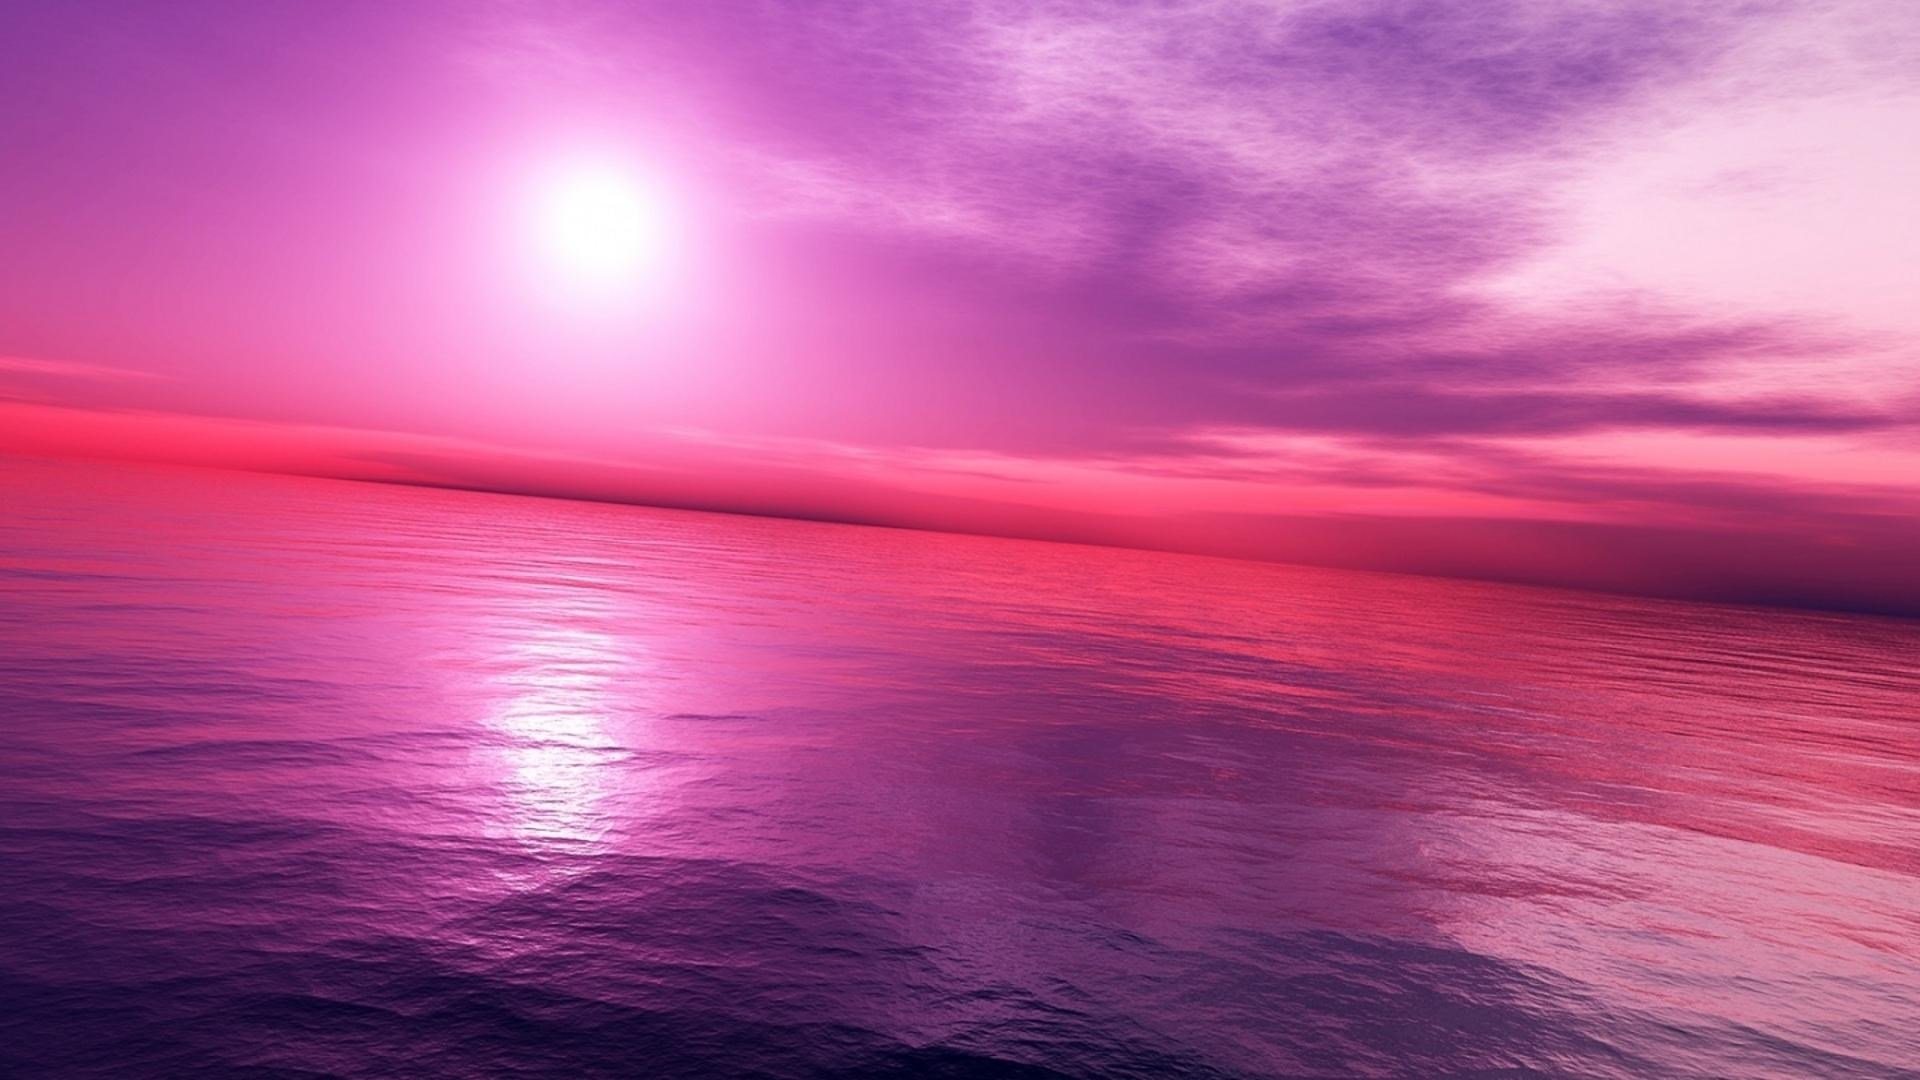 Pink Sky Desktop Wallpaper